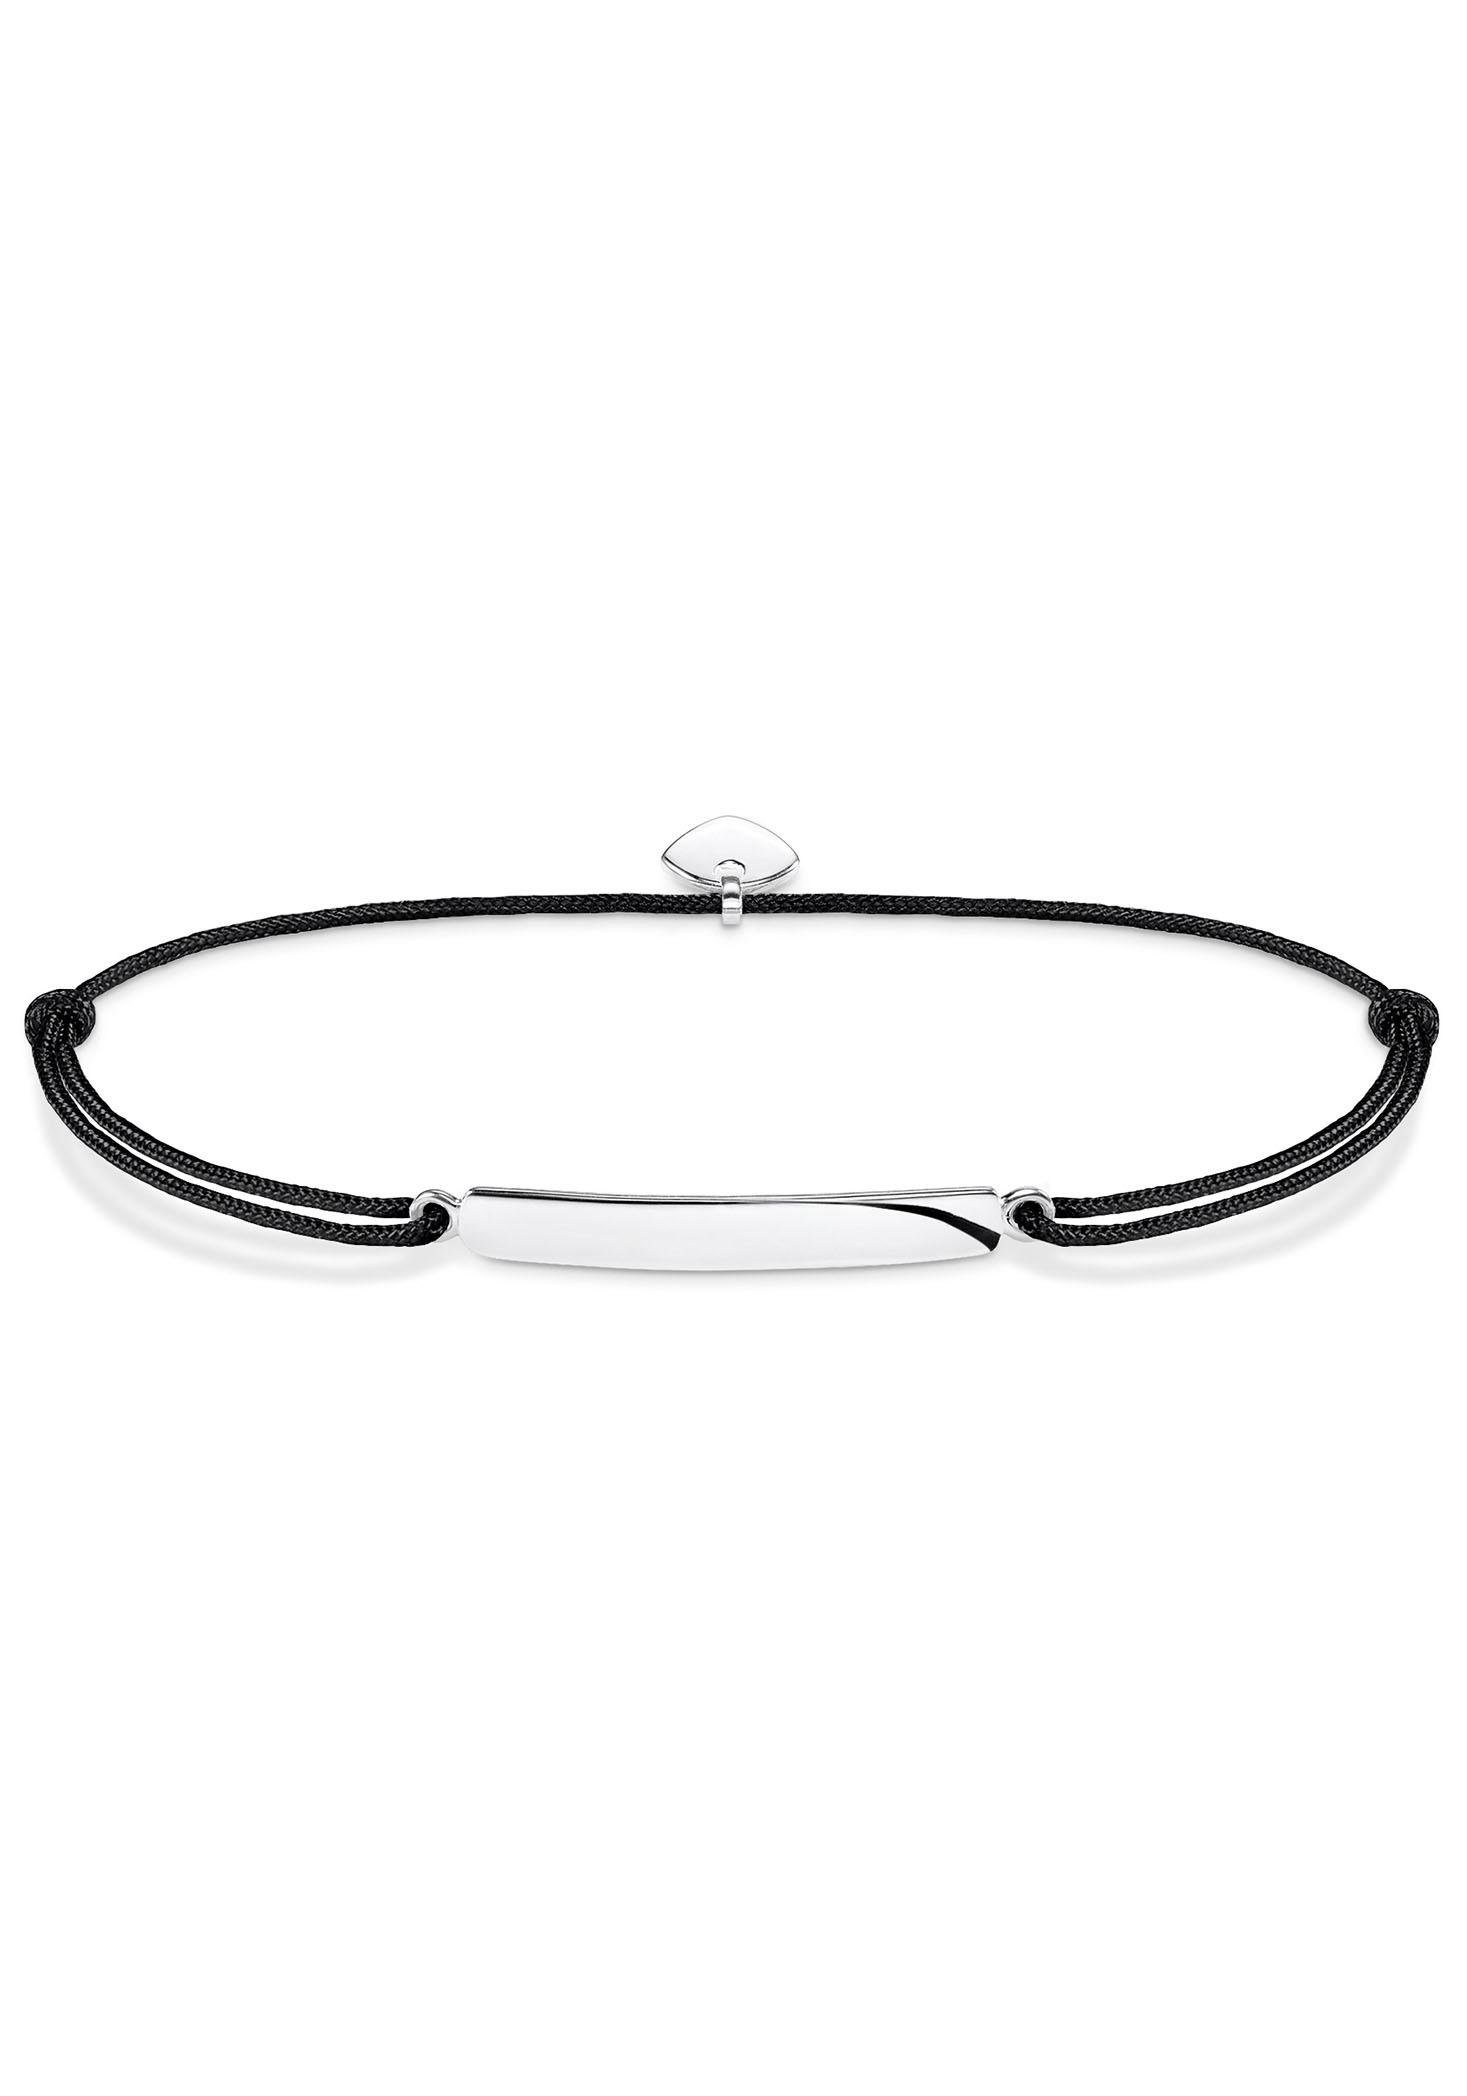 THOMAS SABO Armband »Little Secret, LS012-173-11-L20v«